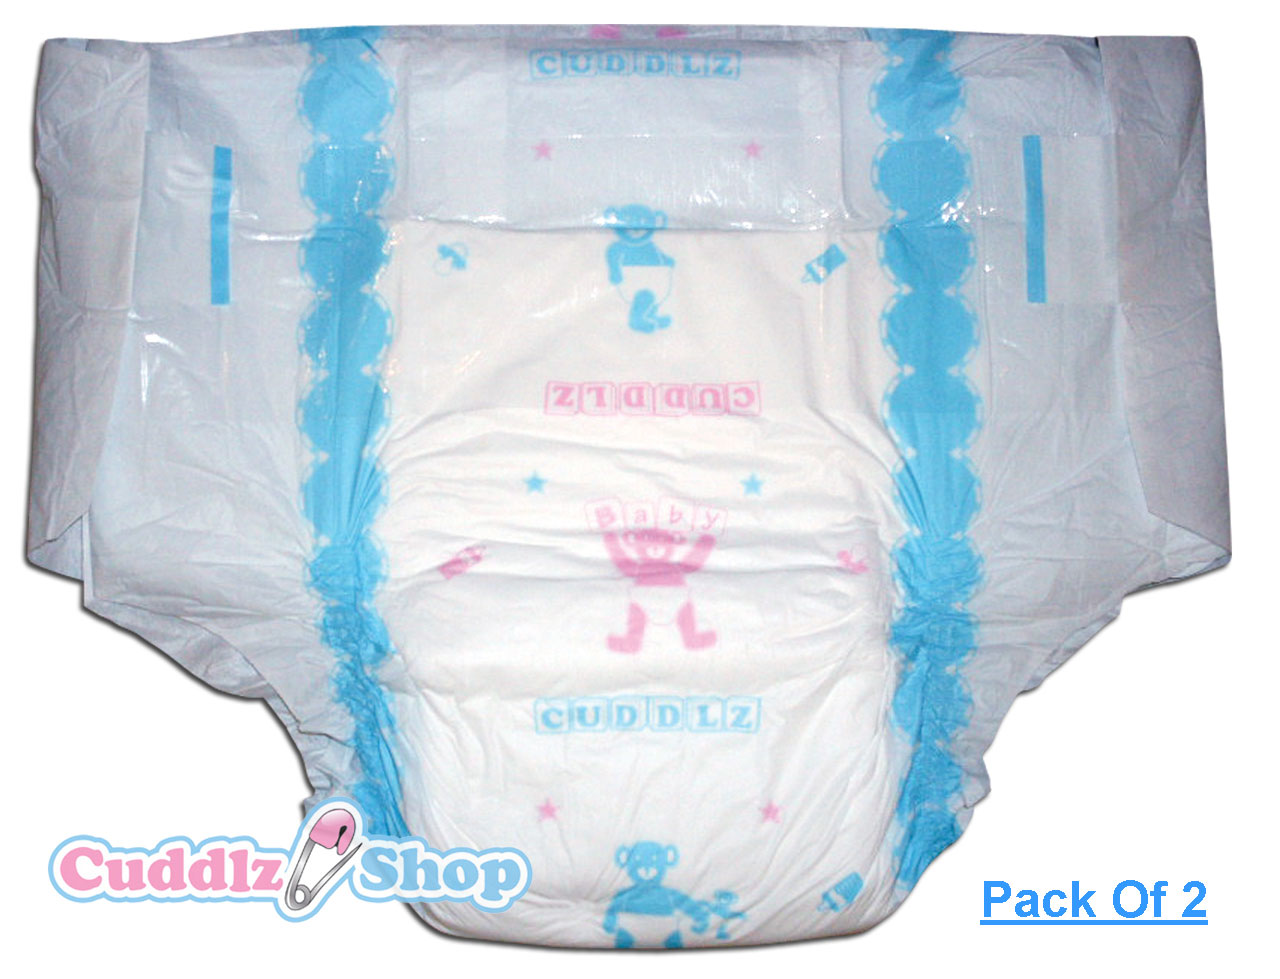 Topic, Adult printed diapers